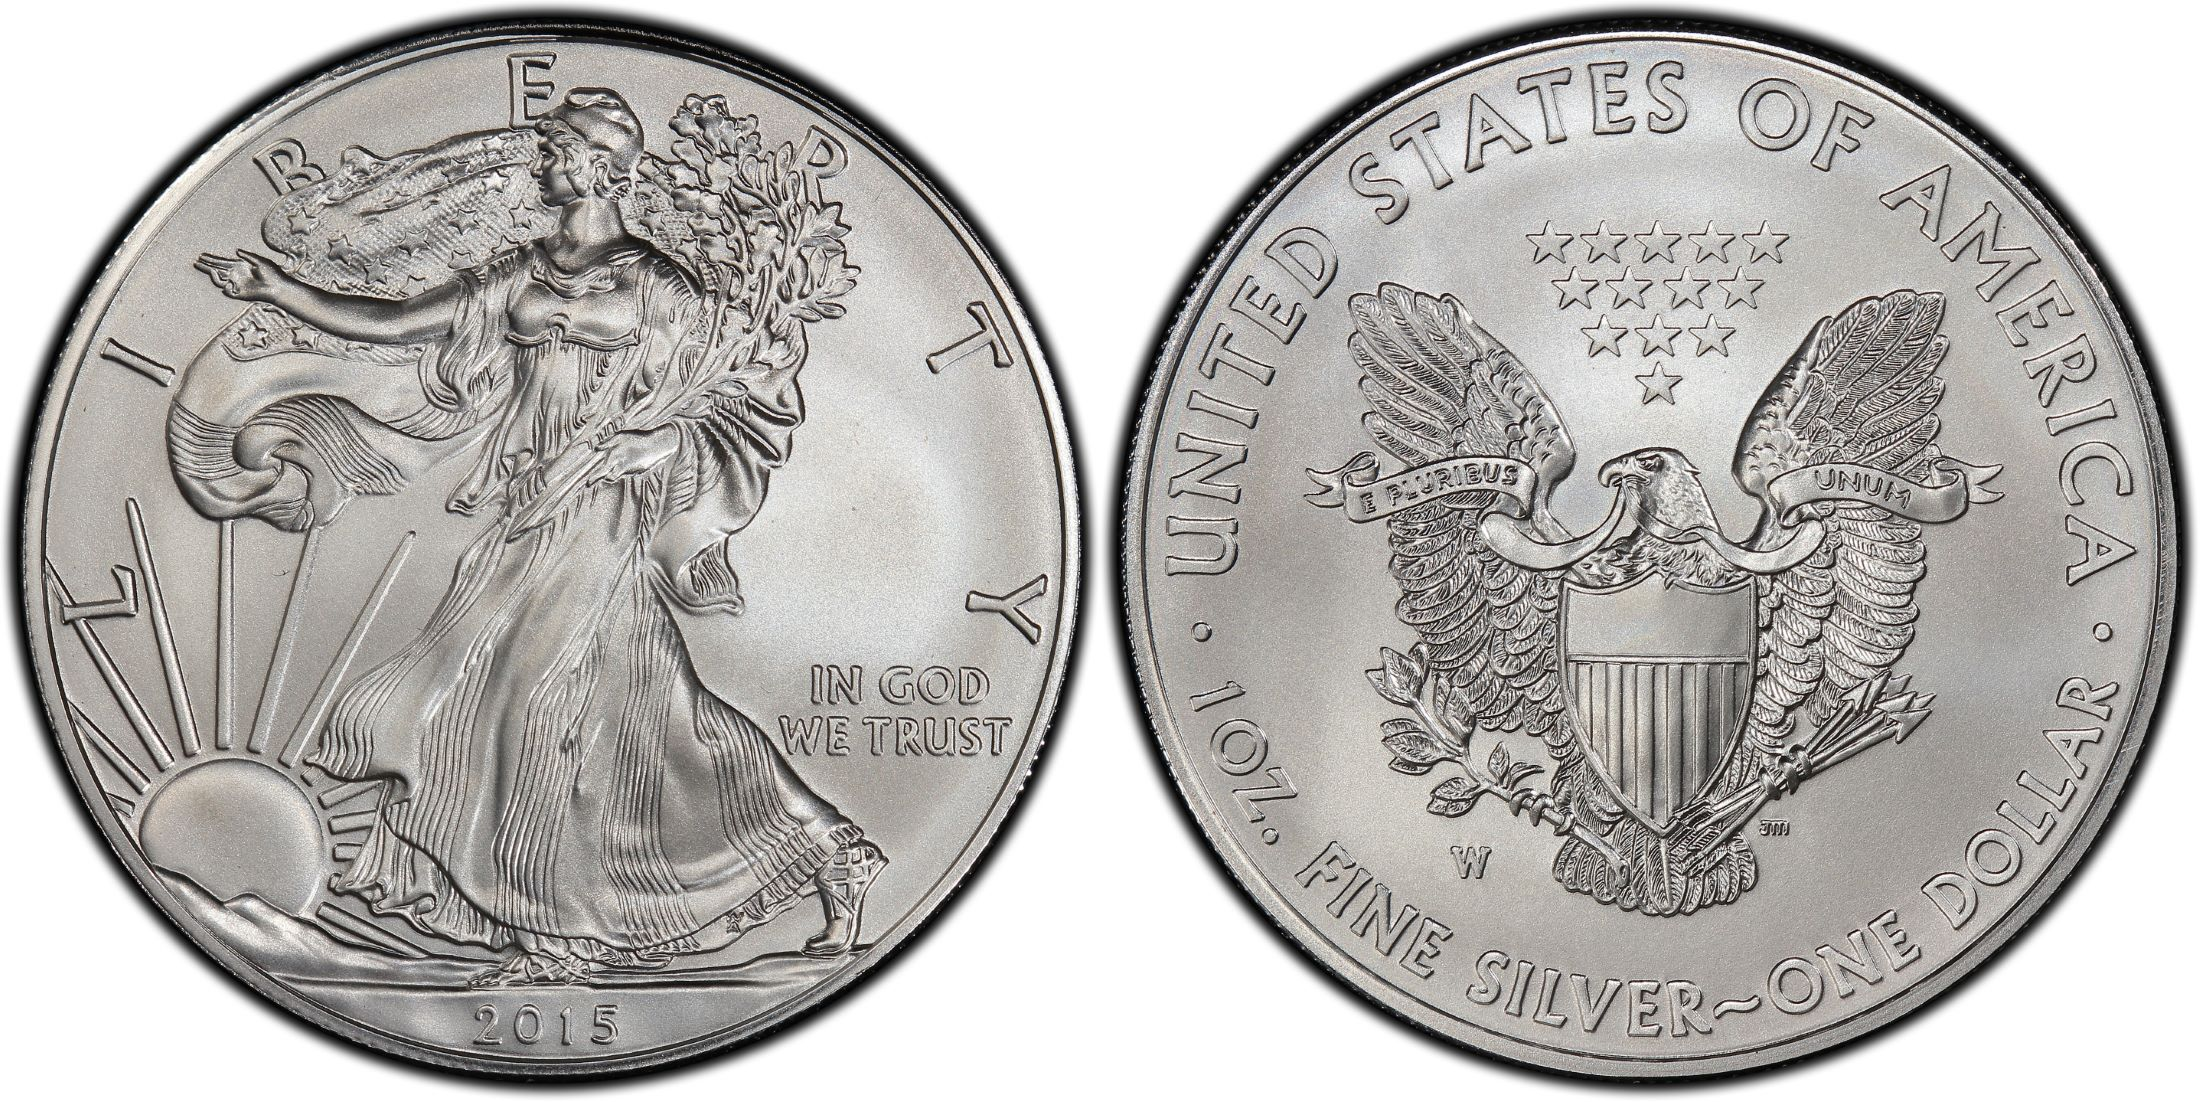 2015 W BURNISHED SILVER EAGLE PCGS SP70 FLAG MERCANTI FIRST DAY OF ISSUE Phila